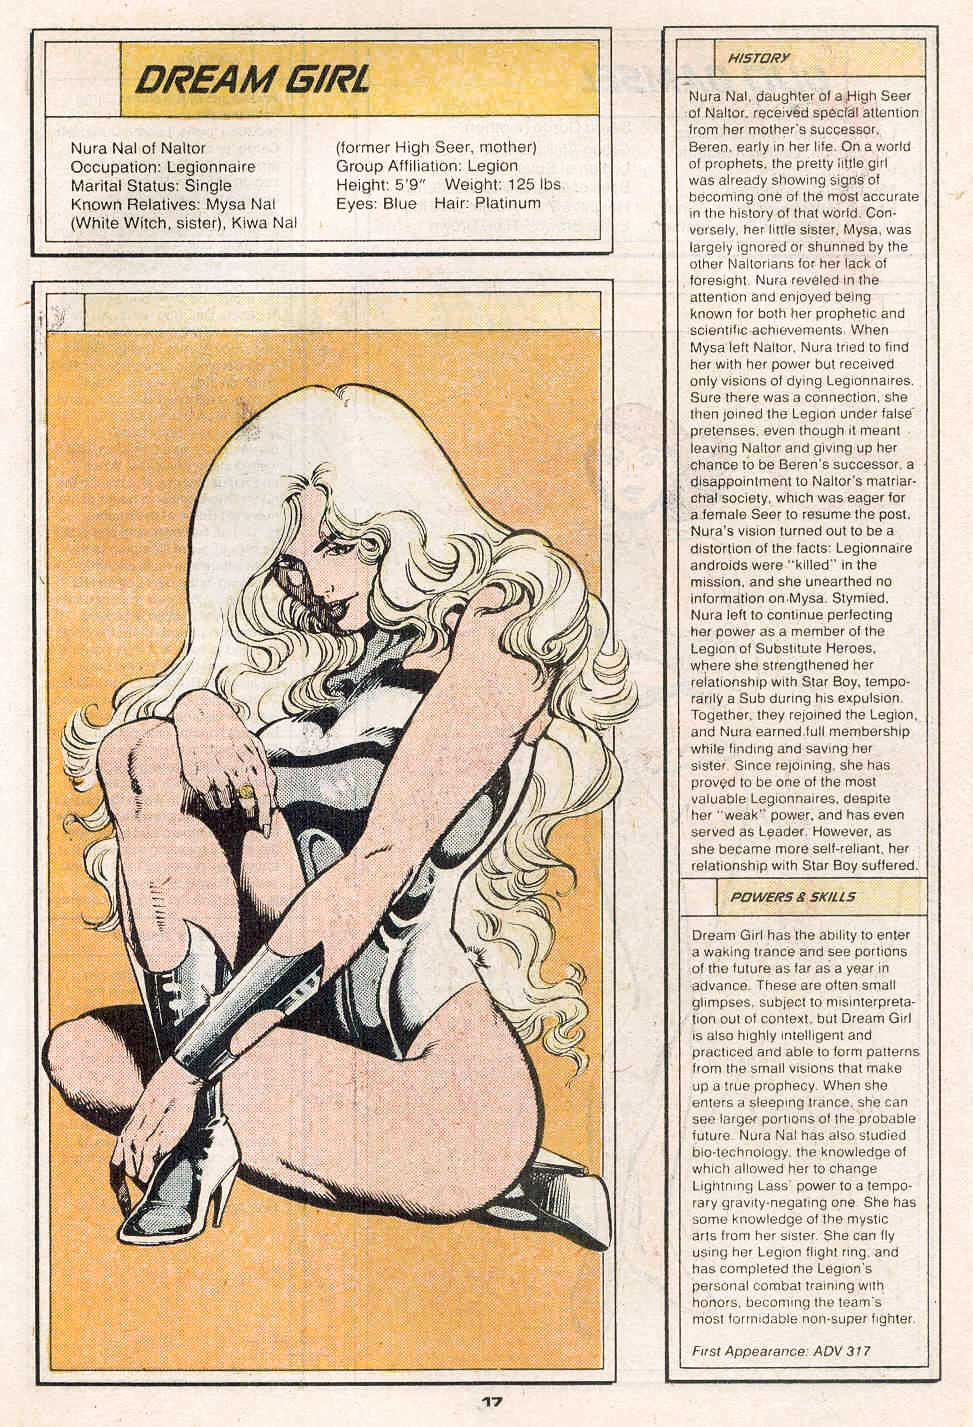 Dream Girl by Greg LaRocque and George Perez - Who's Who in the Legion of Super-Heroes #2